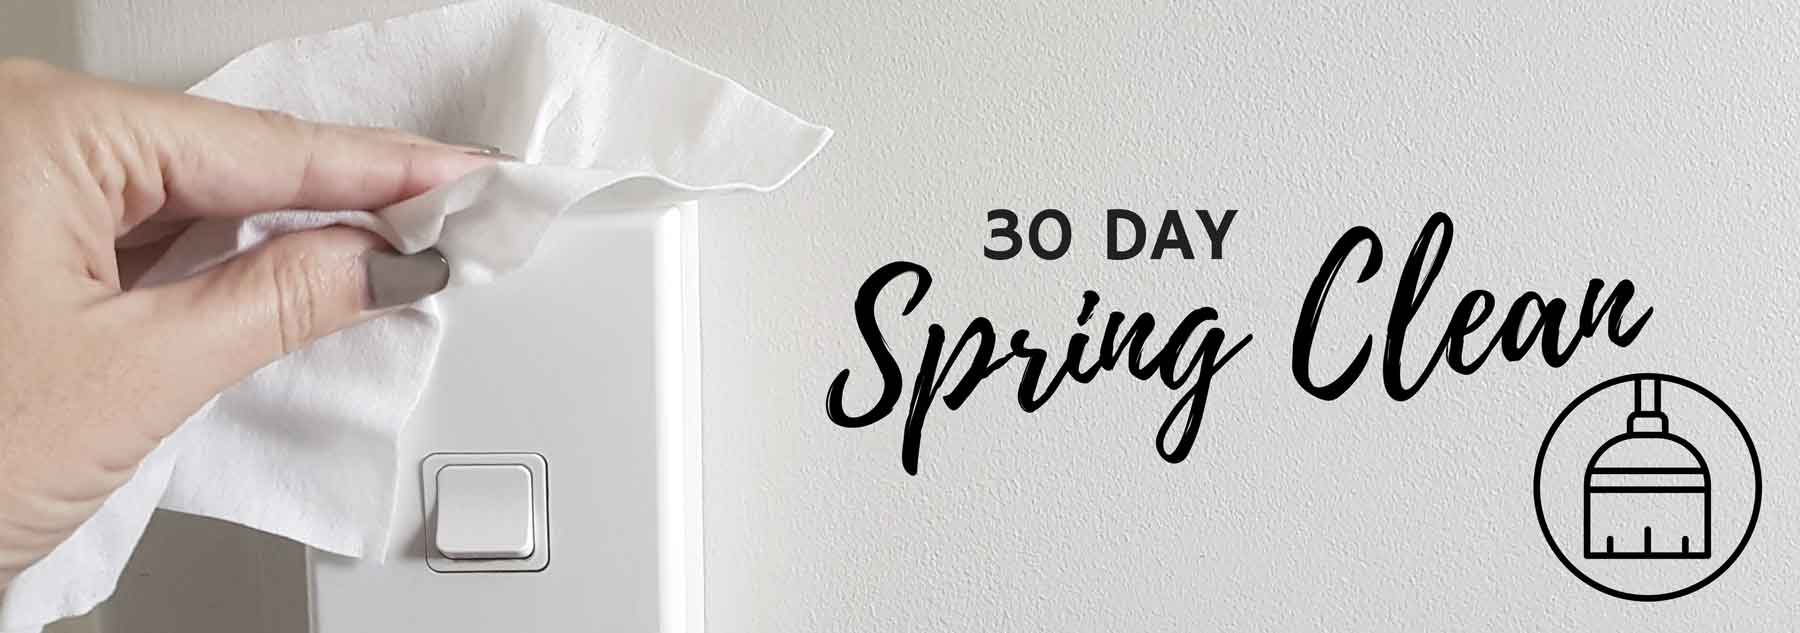 New Zealand's Top Mummy Blogger Parenting Travel Blog Family yarns 30 Day Spring Clean Template